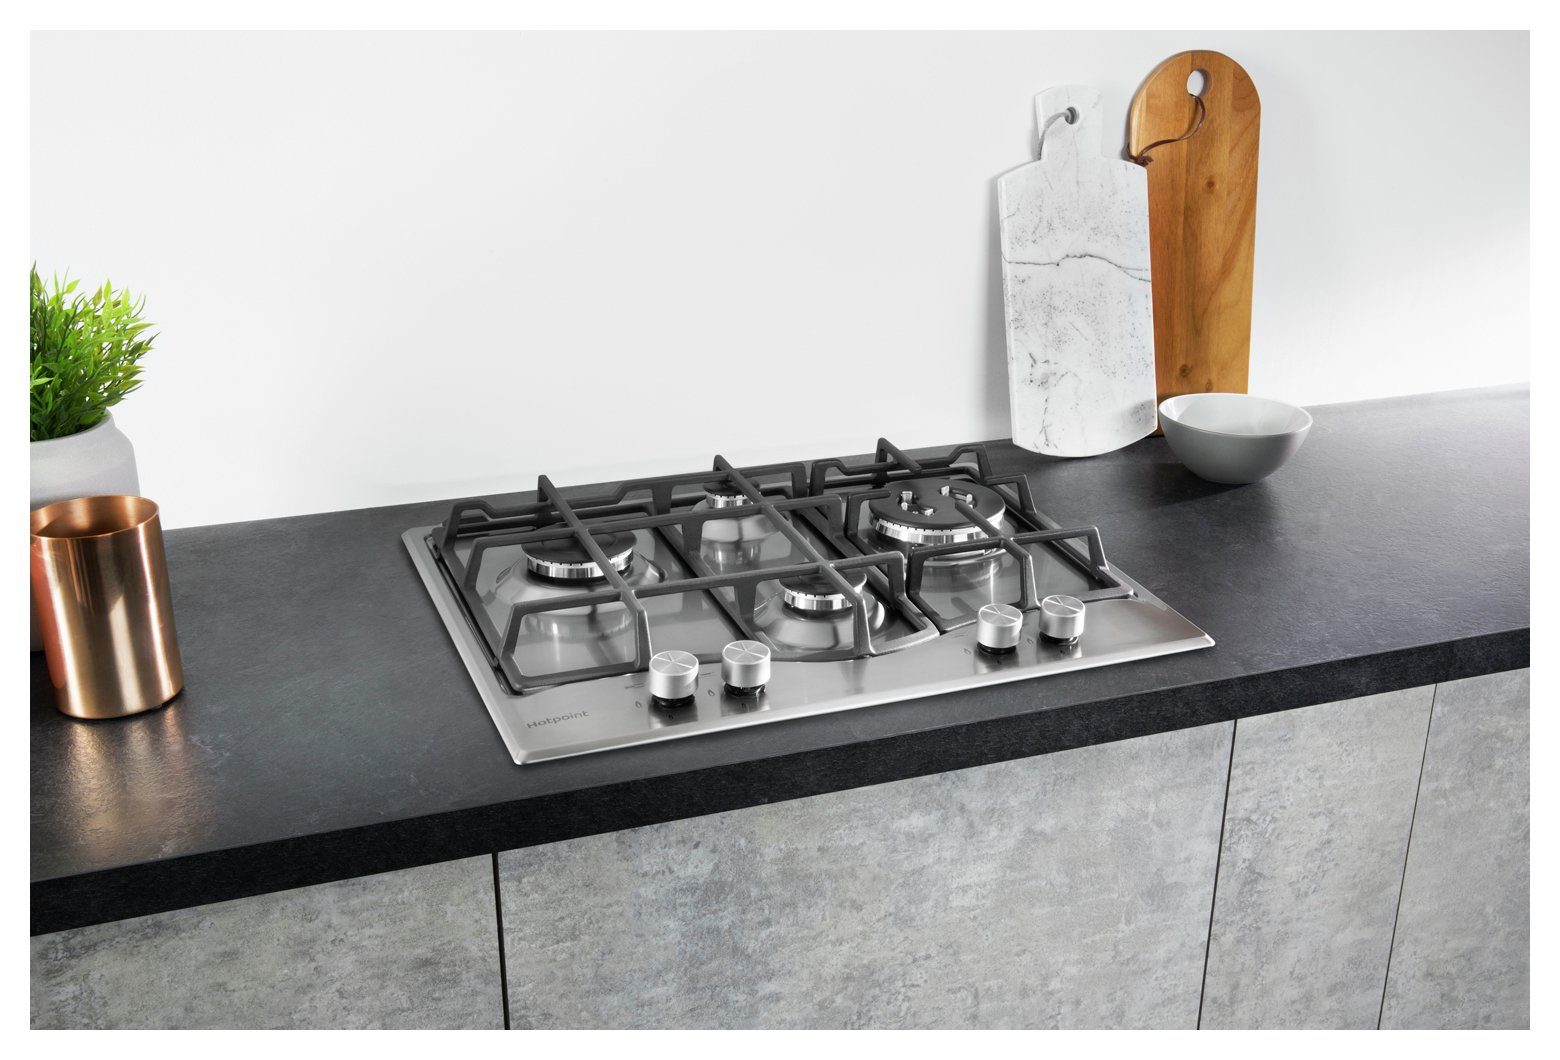 Hotpoint PCN64TIXH 60cm Gas Hob - Stainless Steel.